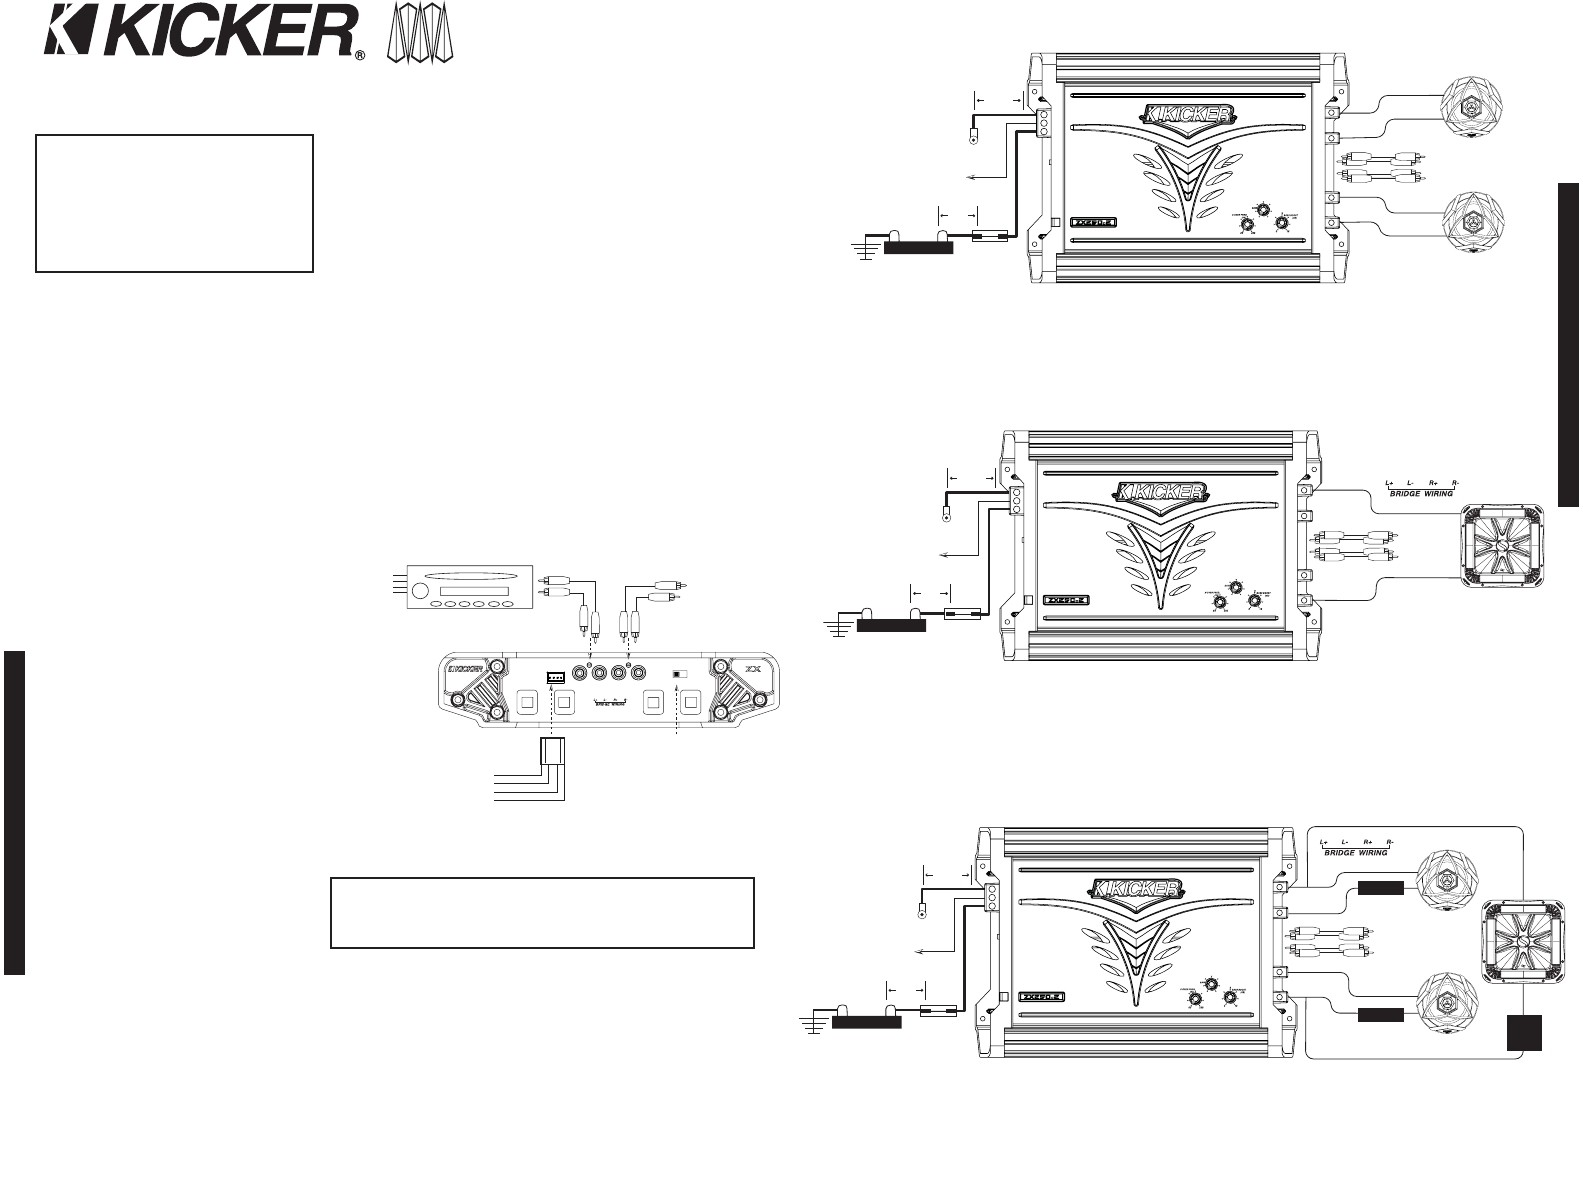 Kicker Solo Baric L7 Wiring Diagram New Wiring Diagram Image